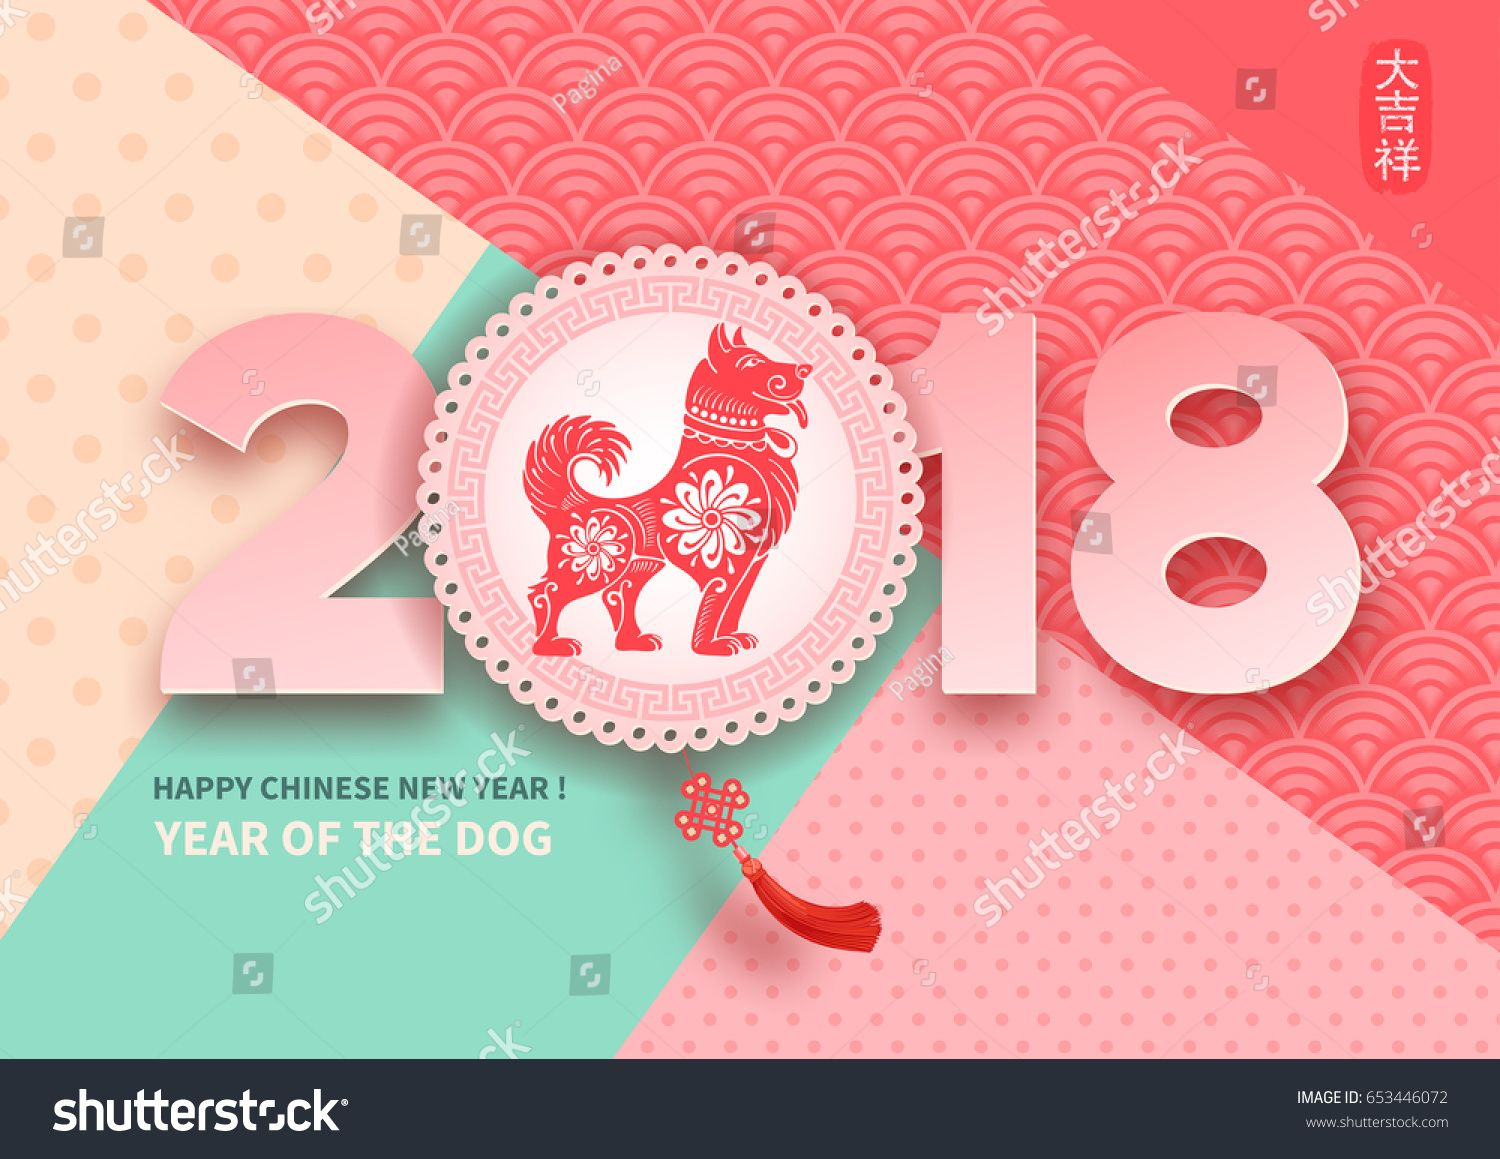 Chinese New Year Festive Vector Card Design With Cute